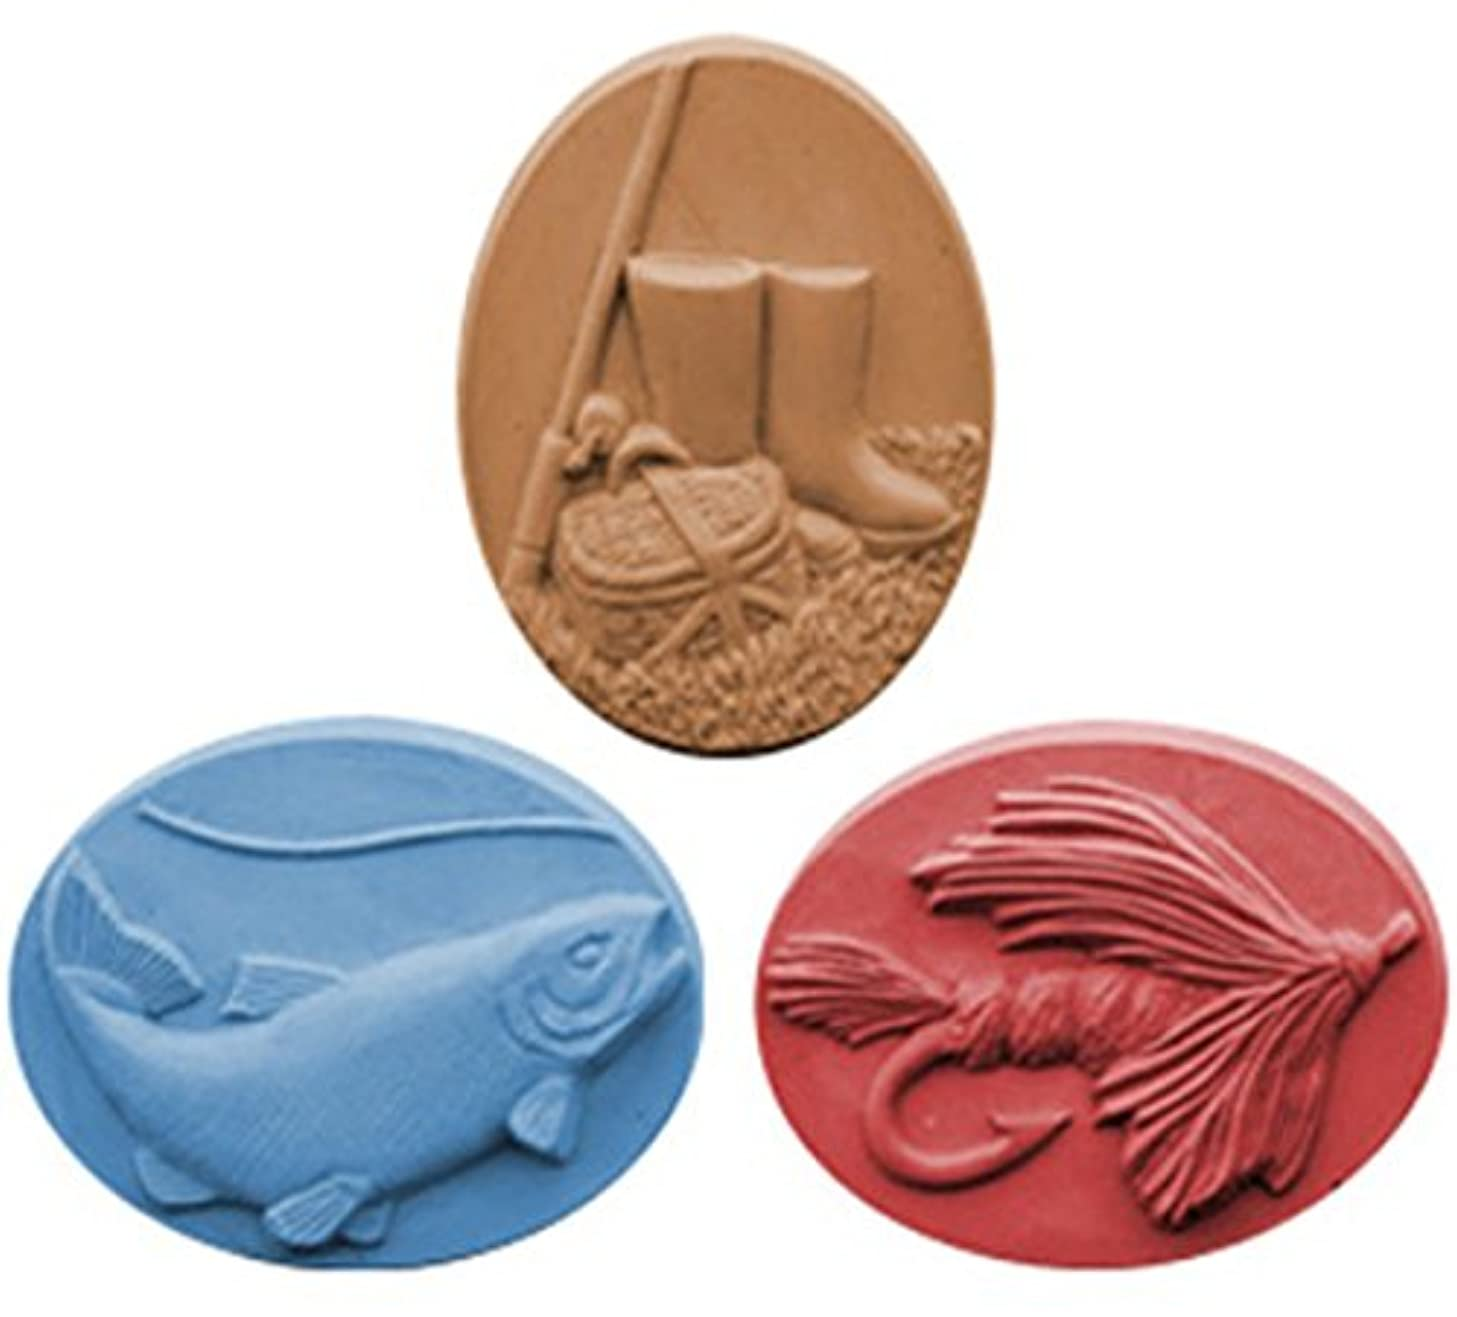 Gone Fishing Soap Mold (MW 80) -  Milky Way. Melt & Pour, Cold Process w/ Exclusive Copyrighted Full Color Cybrtrayd Soap Molding Instructions in a Sealed Poly Bag